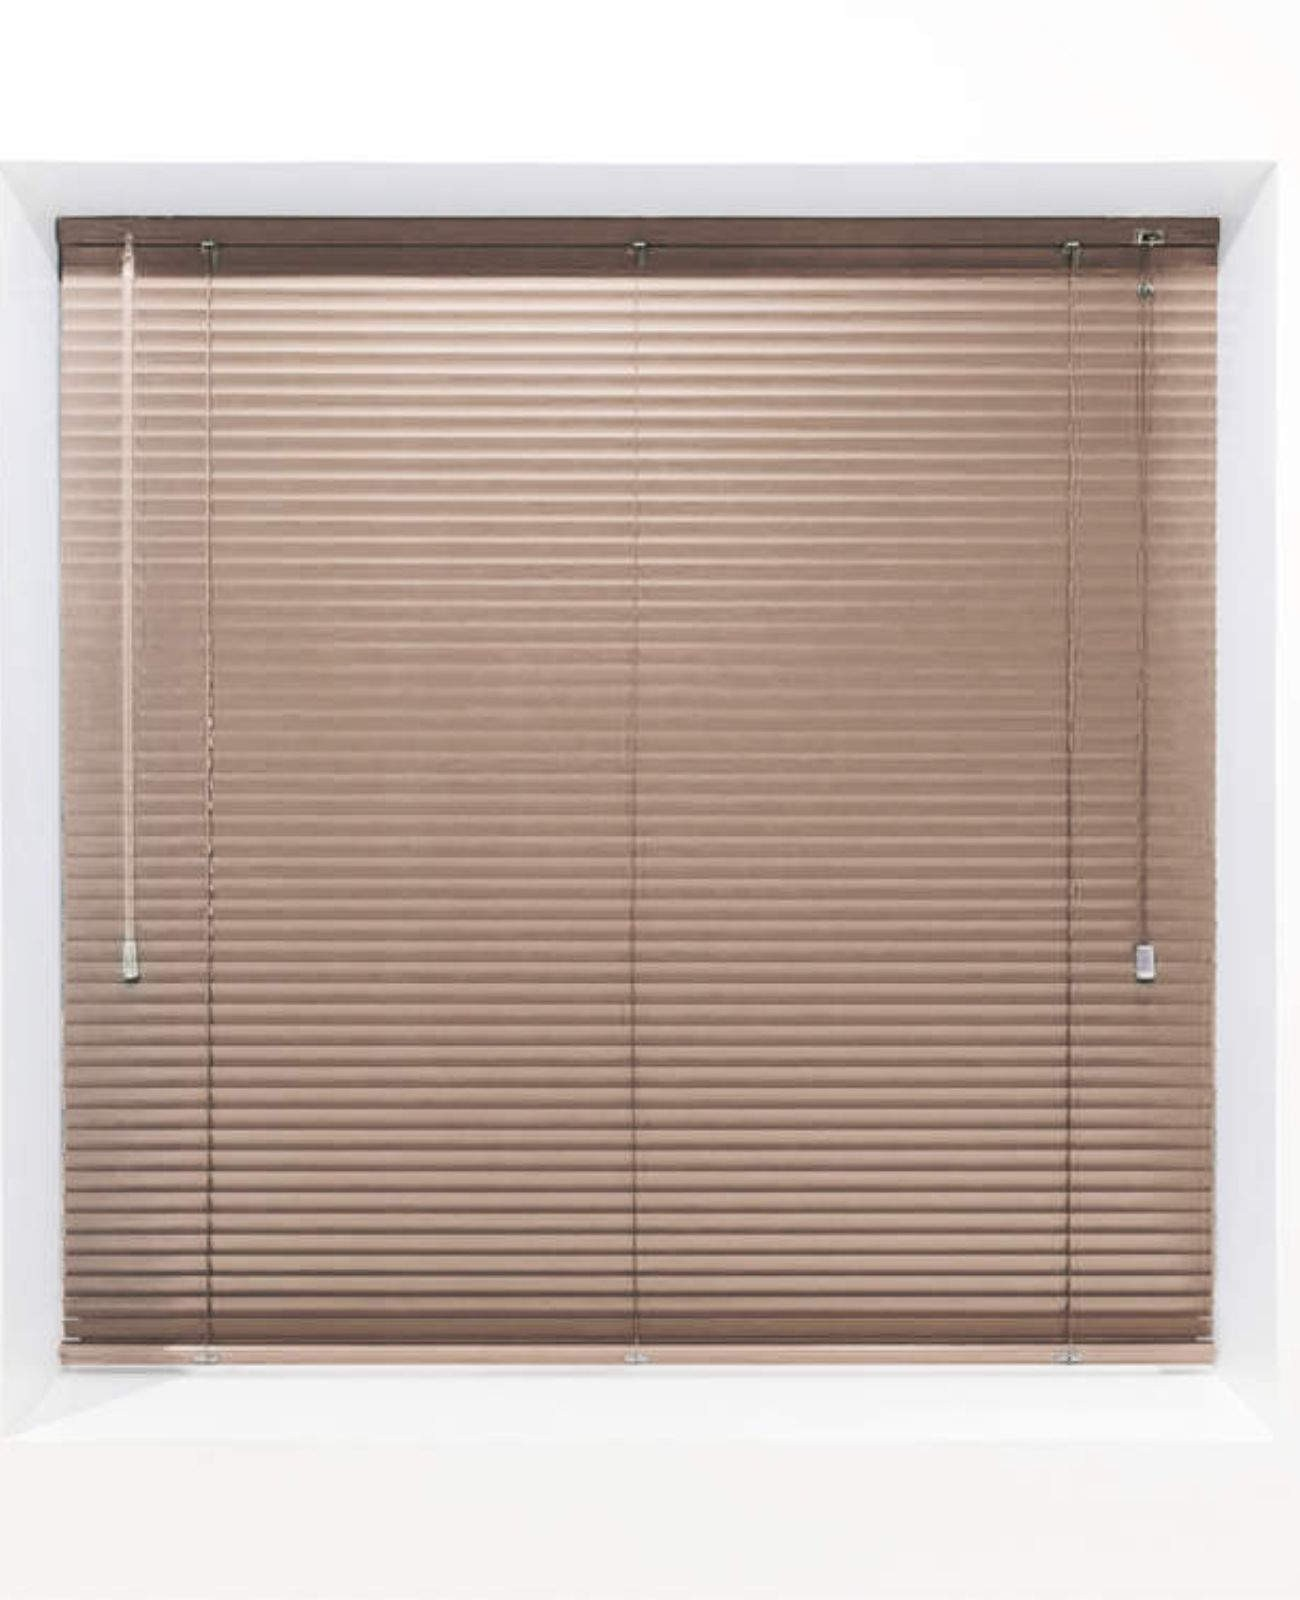 Mocha 25mm Metal Venetian Blind - Made to Measure